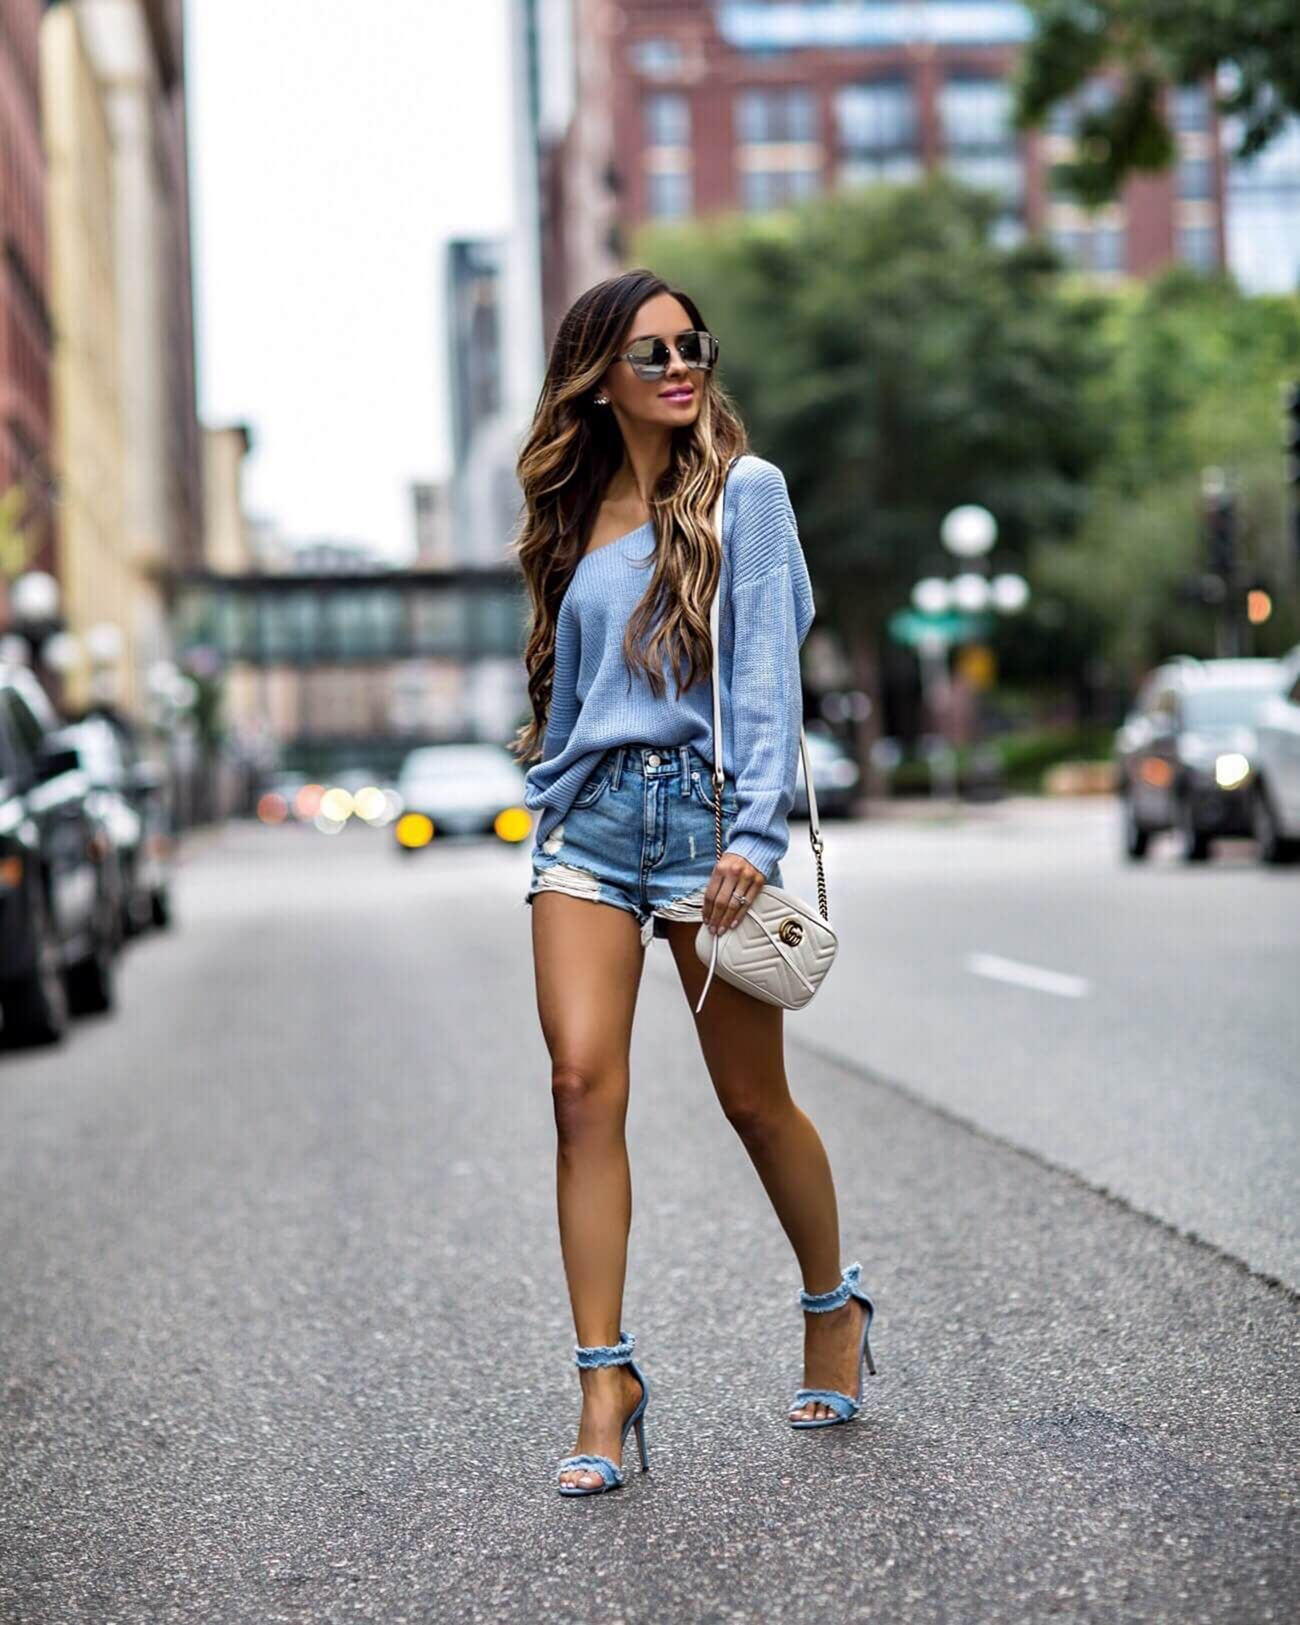 10 Beautiful Shorts with High Heels Ideas That Will Make Your Style More Fashionable